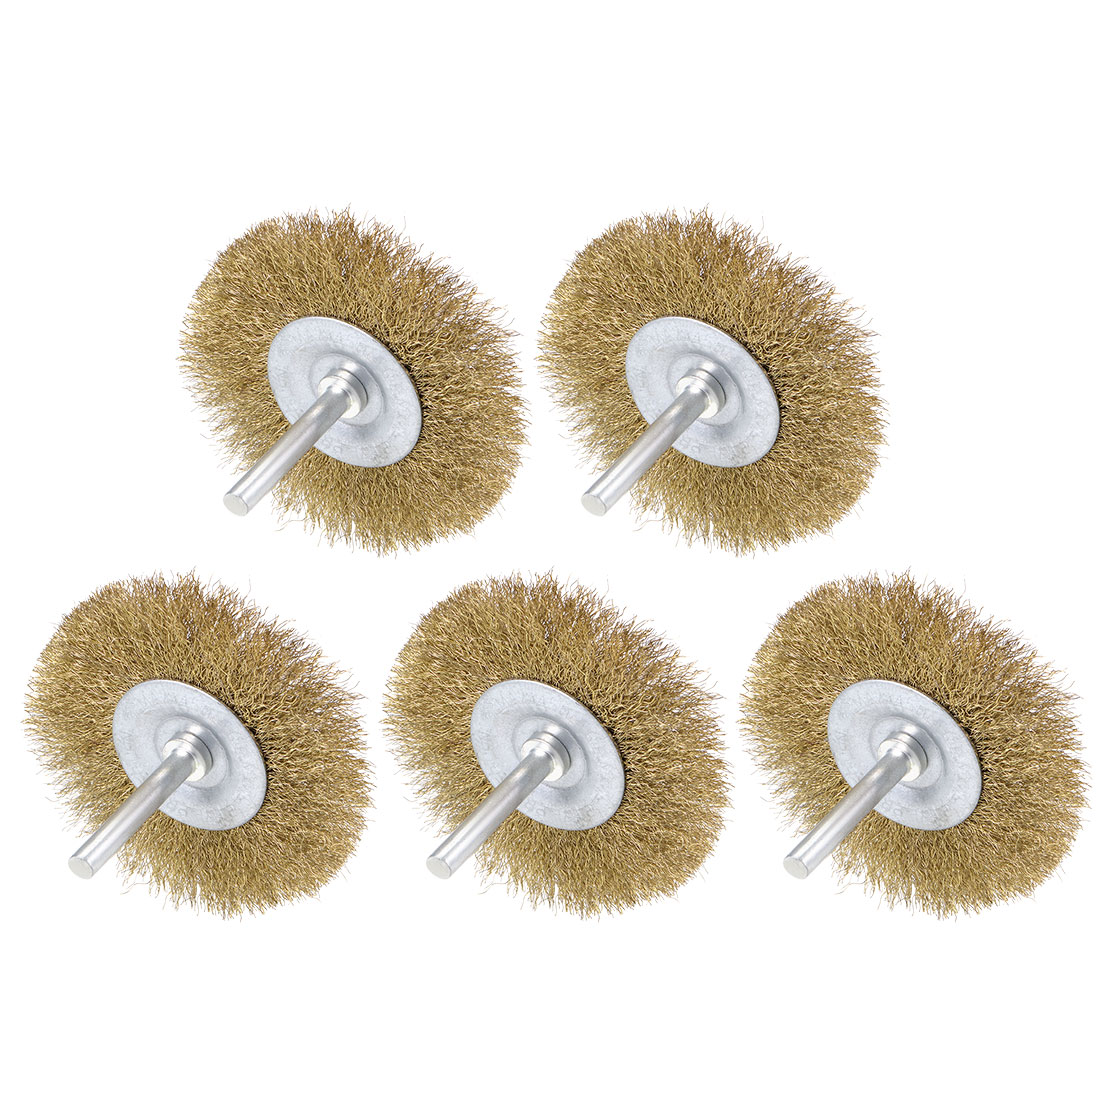 3-Inch Wire Wheel Brush Bench Brass Plated Crimped Steel 1/4-Inch Shank 5 Pcs